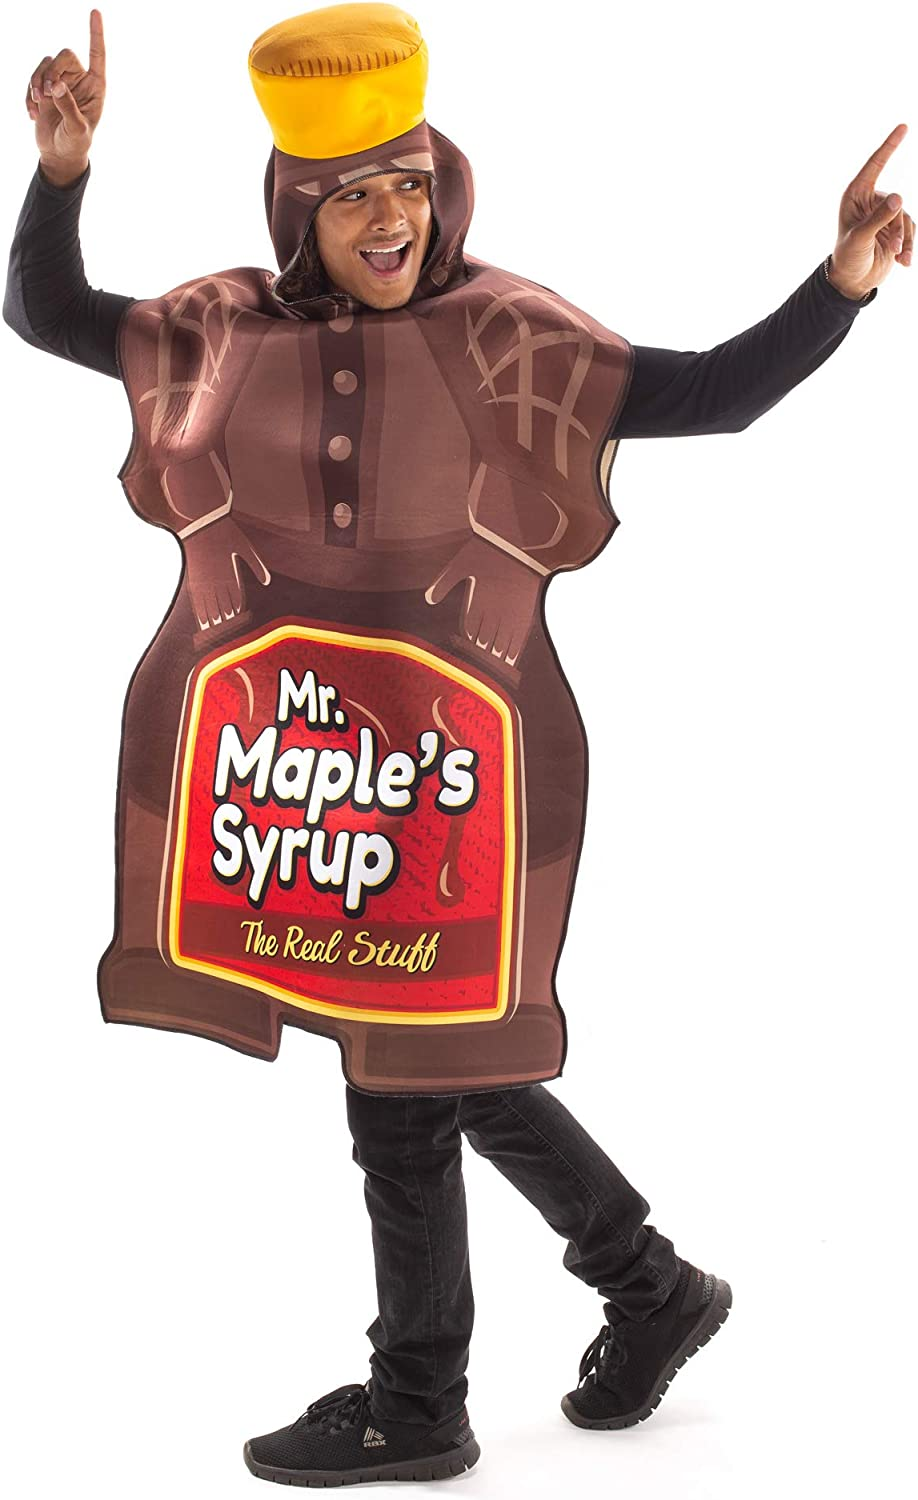 Mr. Maple Syrup Bottle Halloween Costume - Funny Adult Breakfast Food Body Suit